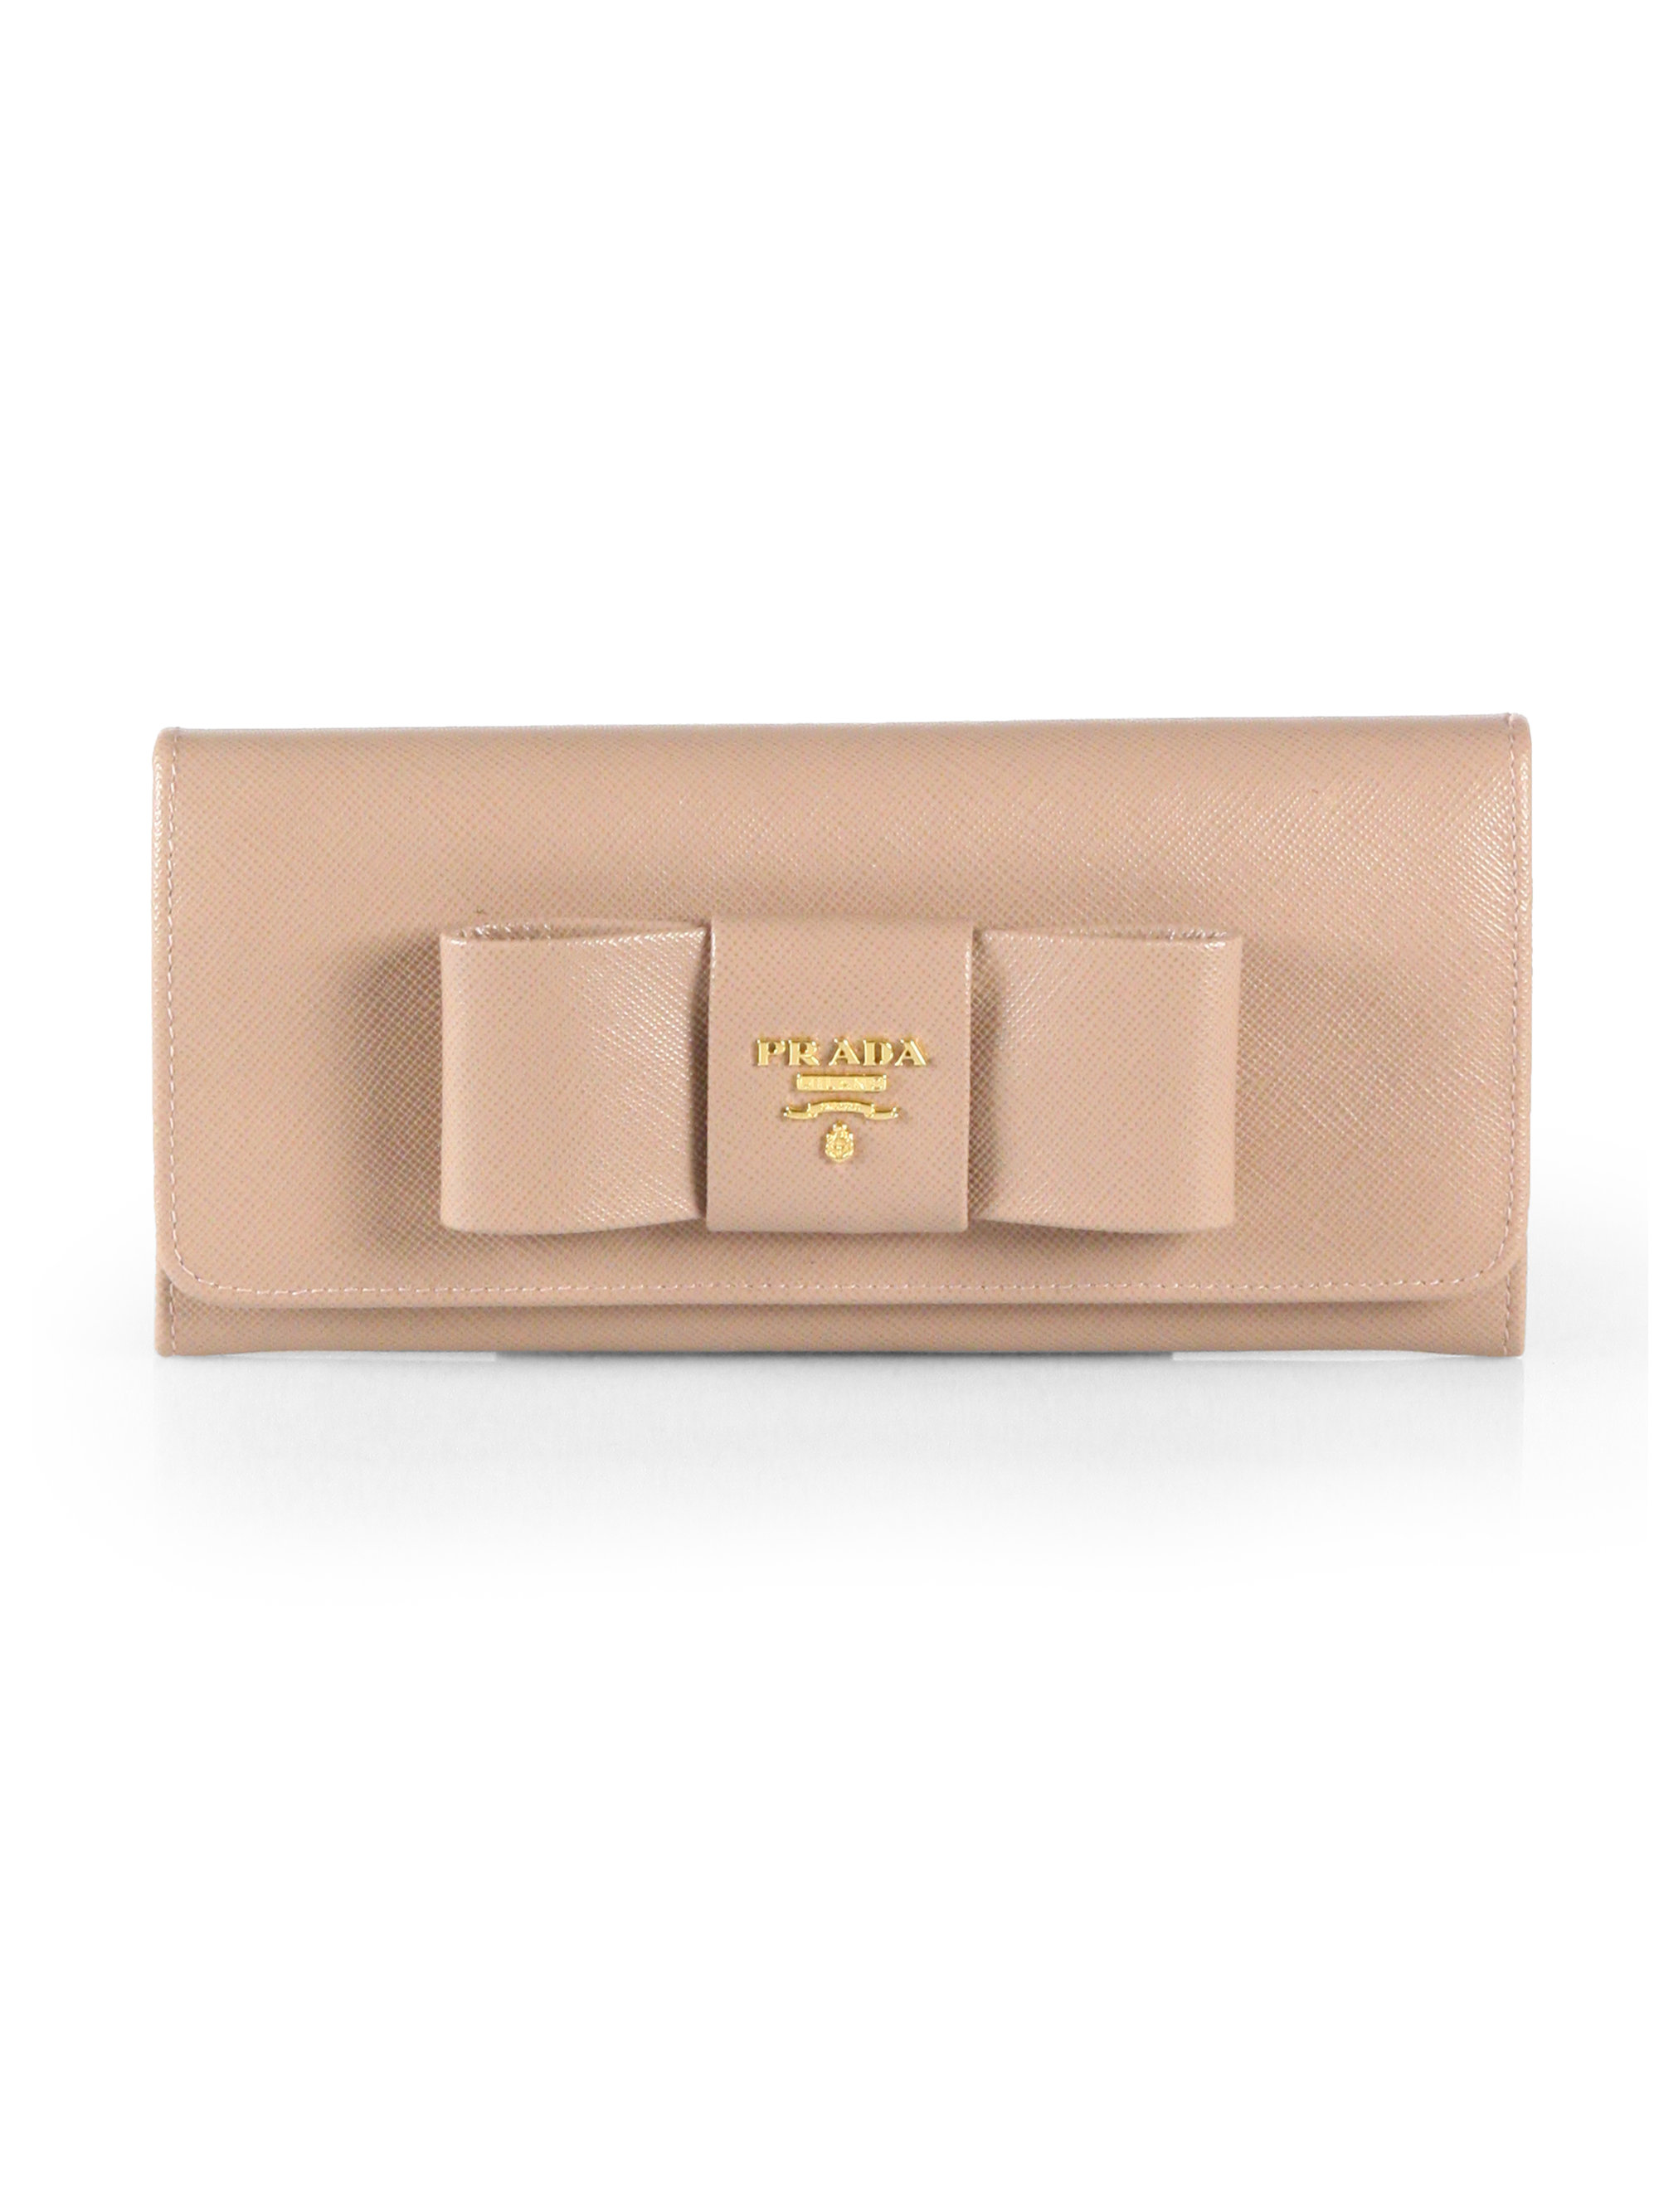 prada continental leather flap wallet